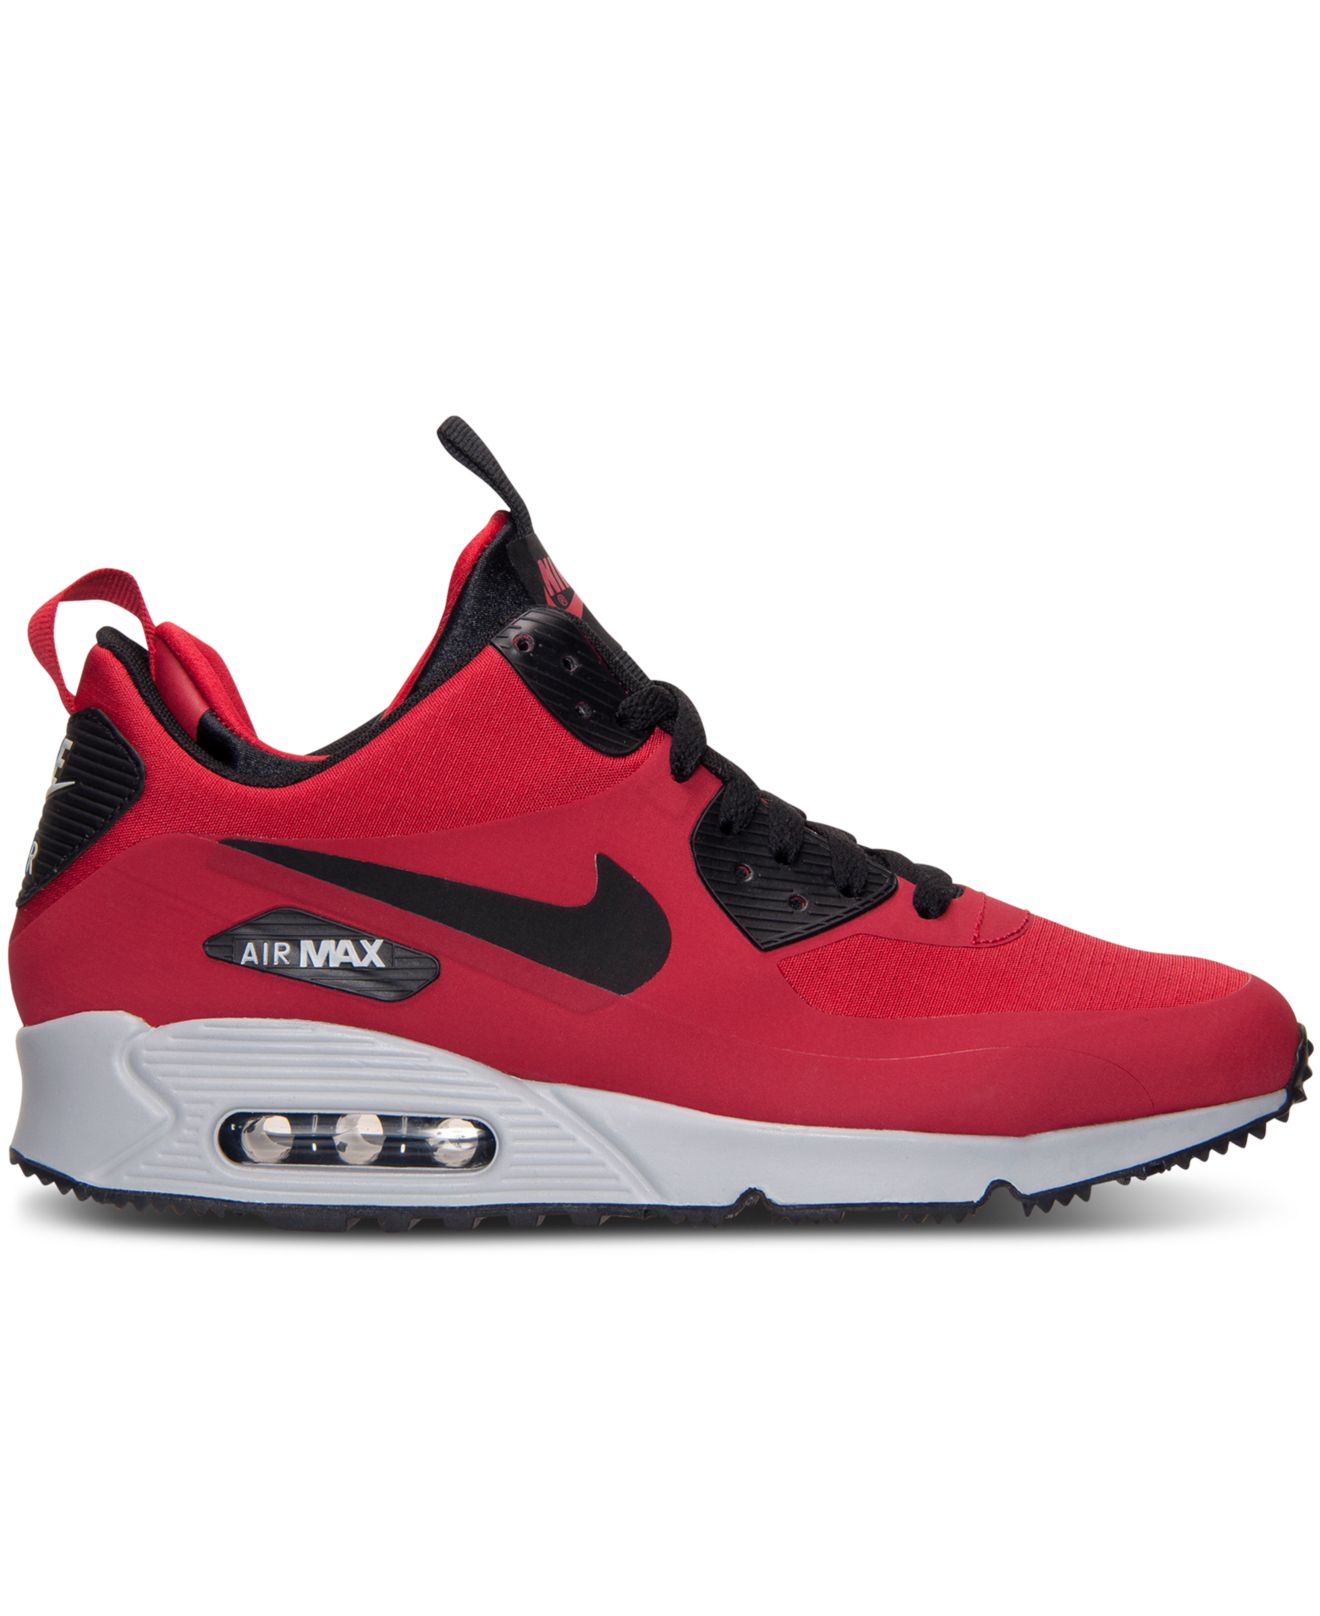 designer fashion 2b517 848f1 Nike Men s Air Max 90 Mid Winter Casual Sneakers From Finish Line in ...